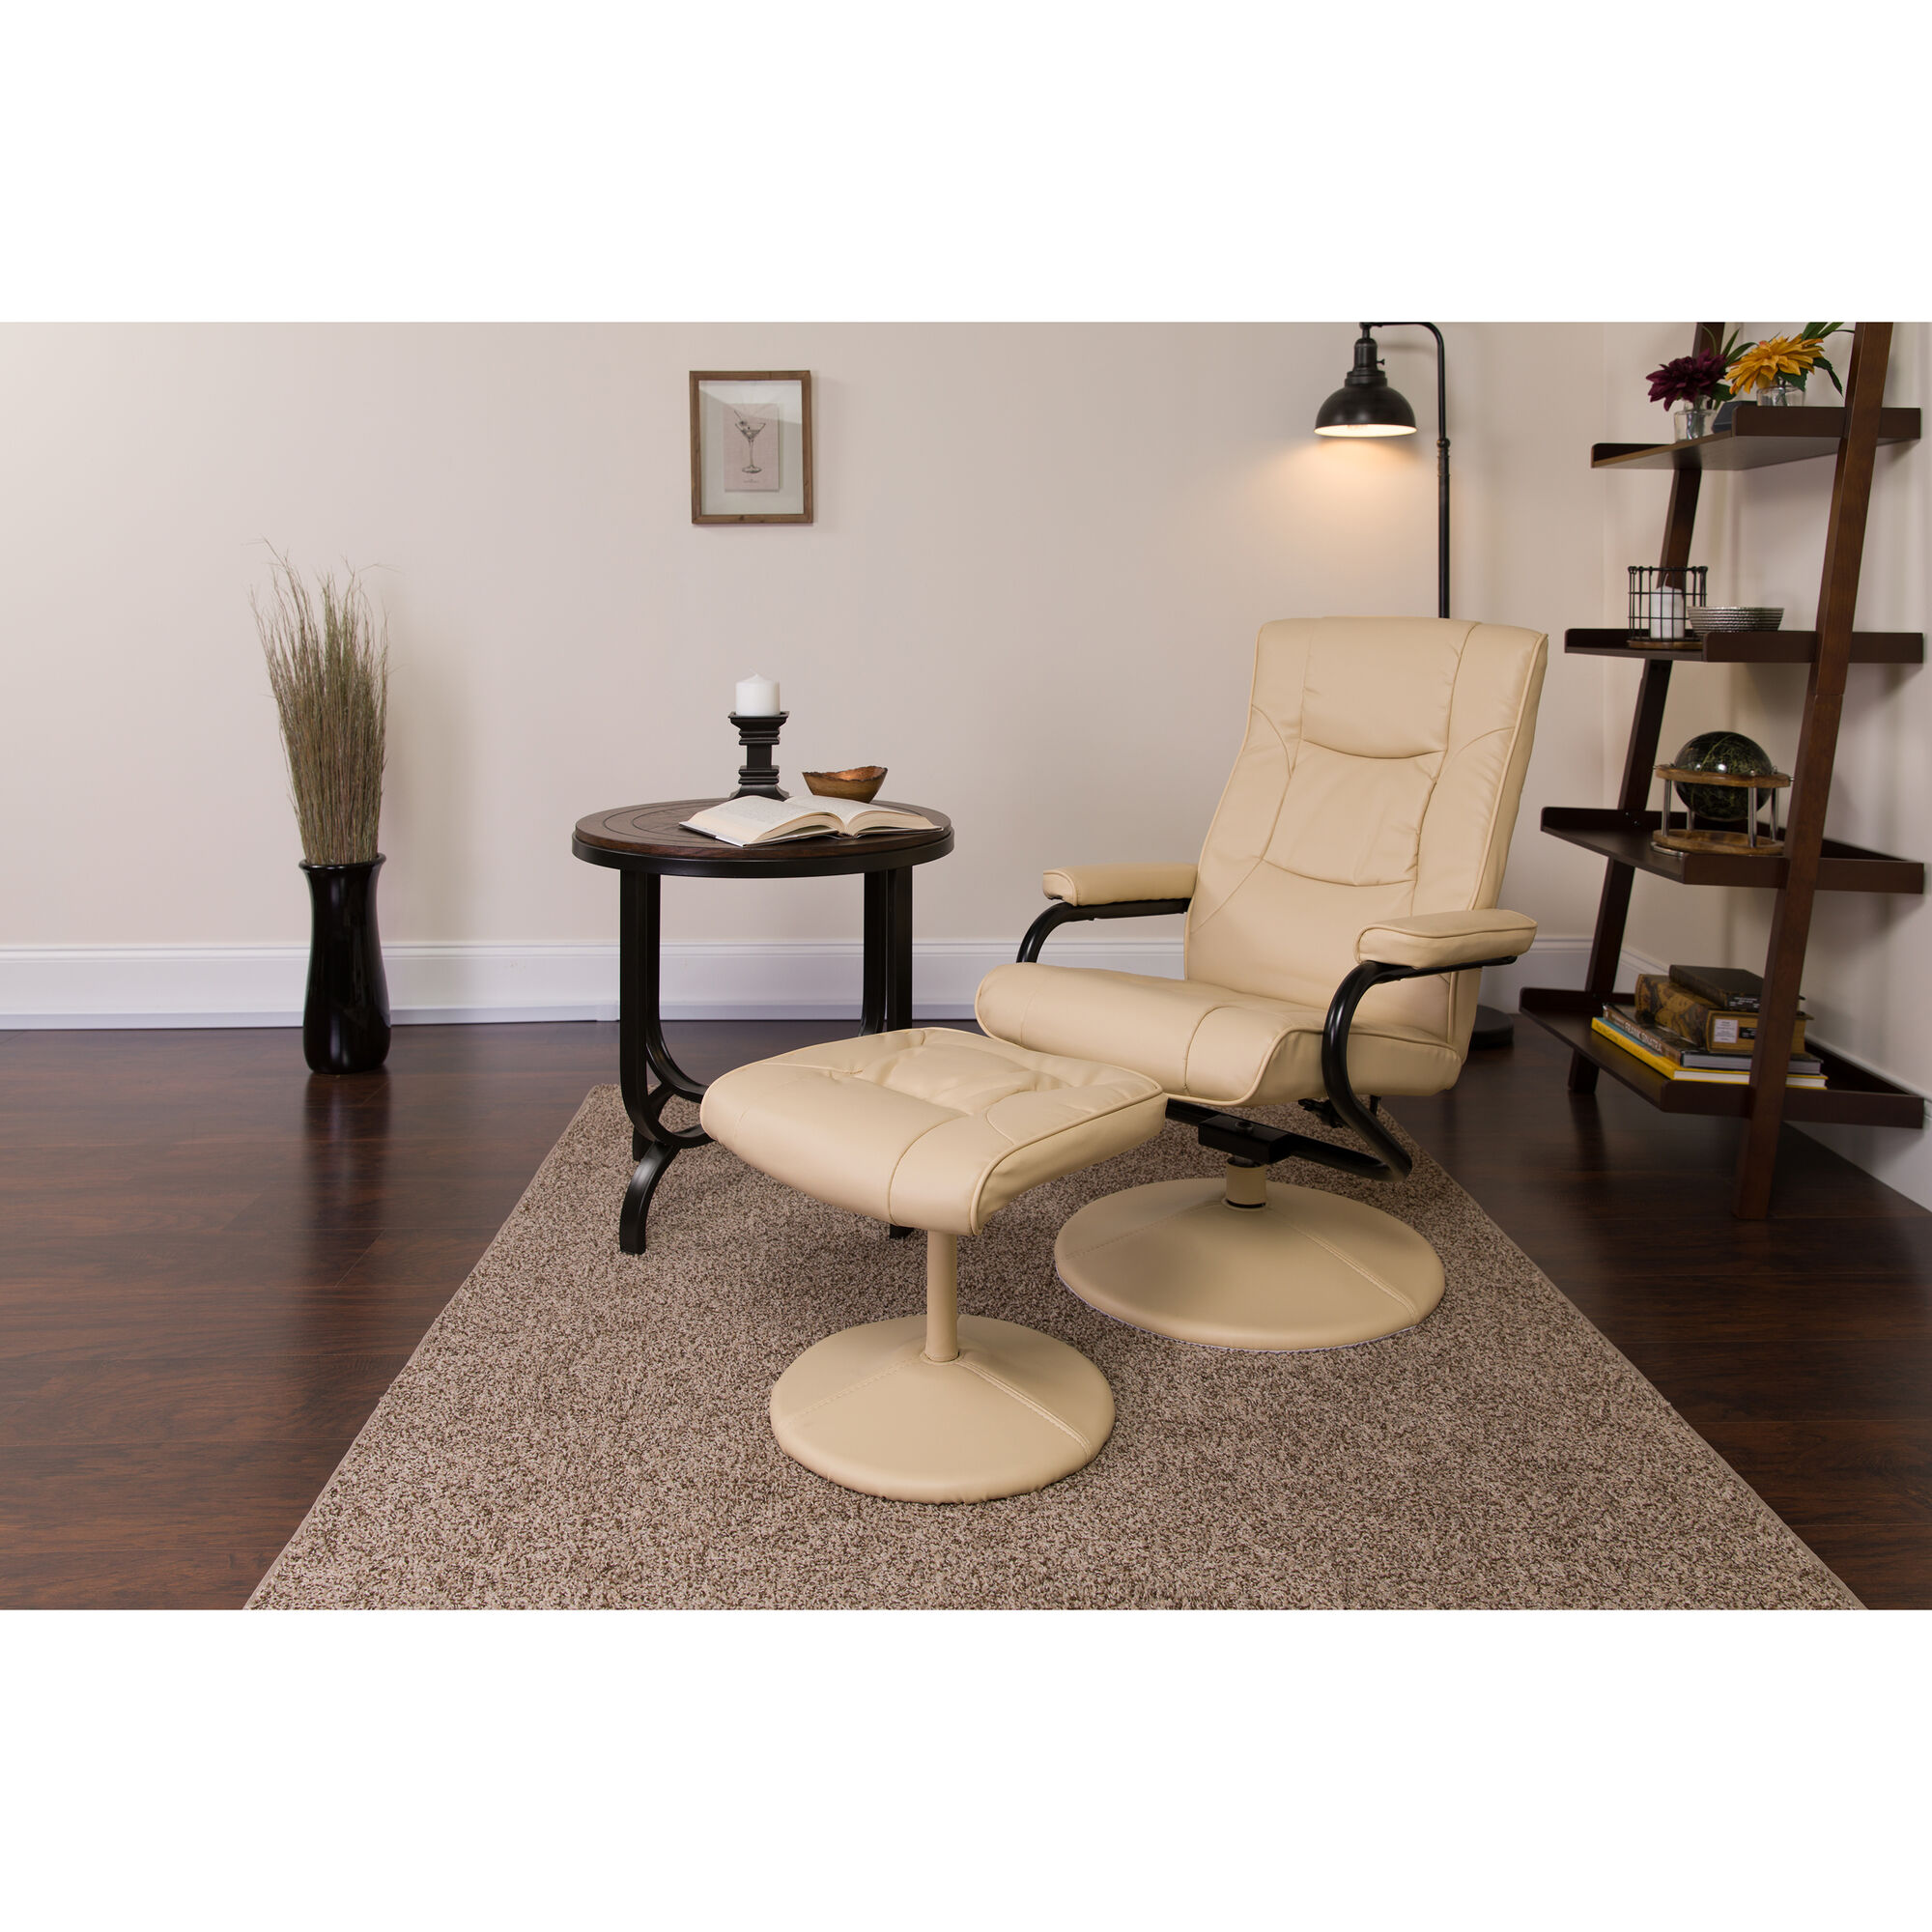 Surprising Contemporary Multi Position Recliner And Ottoman With Wrapped Base In Cream Leather Dailytribune Chair Design For Home Dailytribuneorg